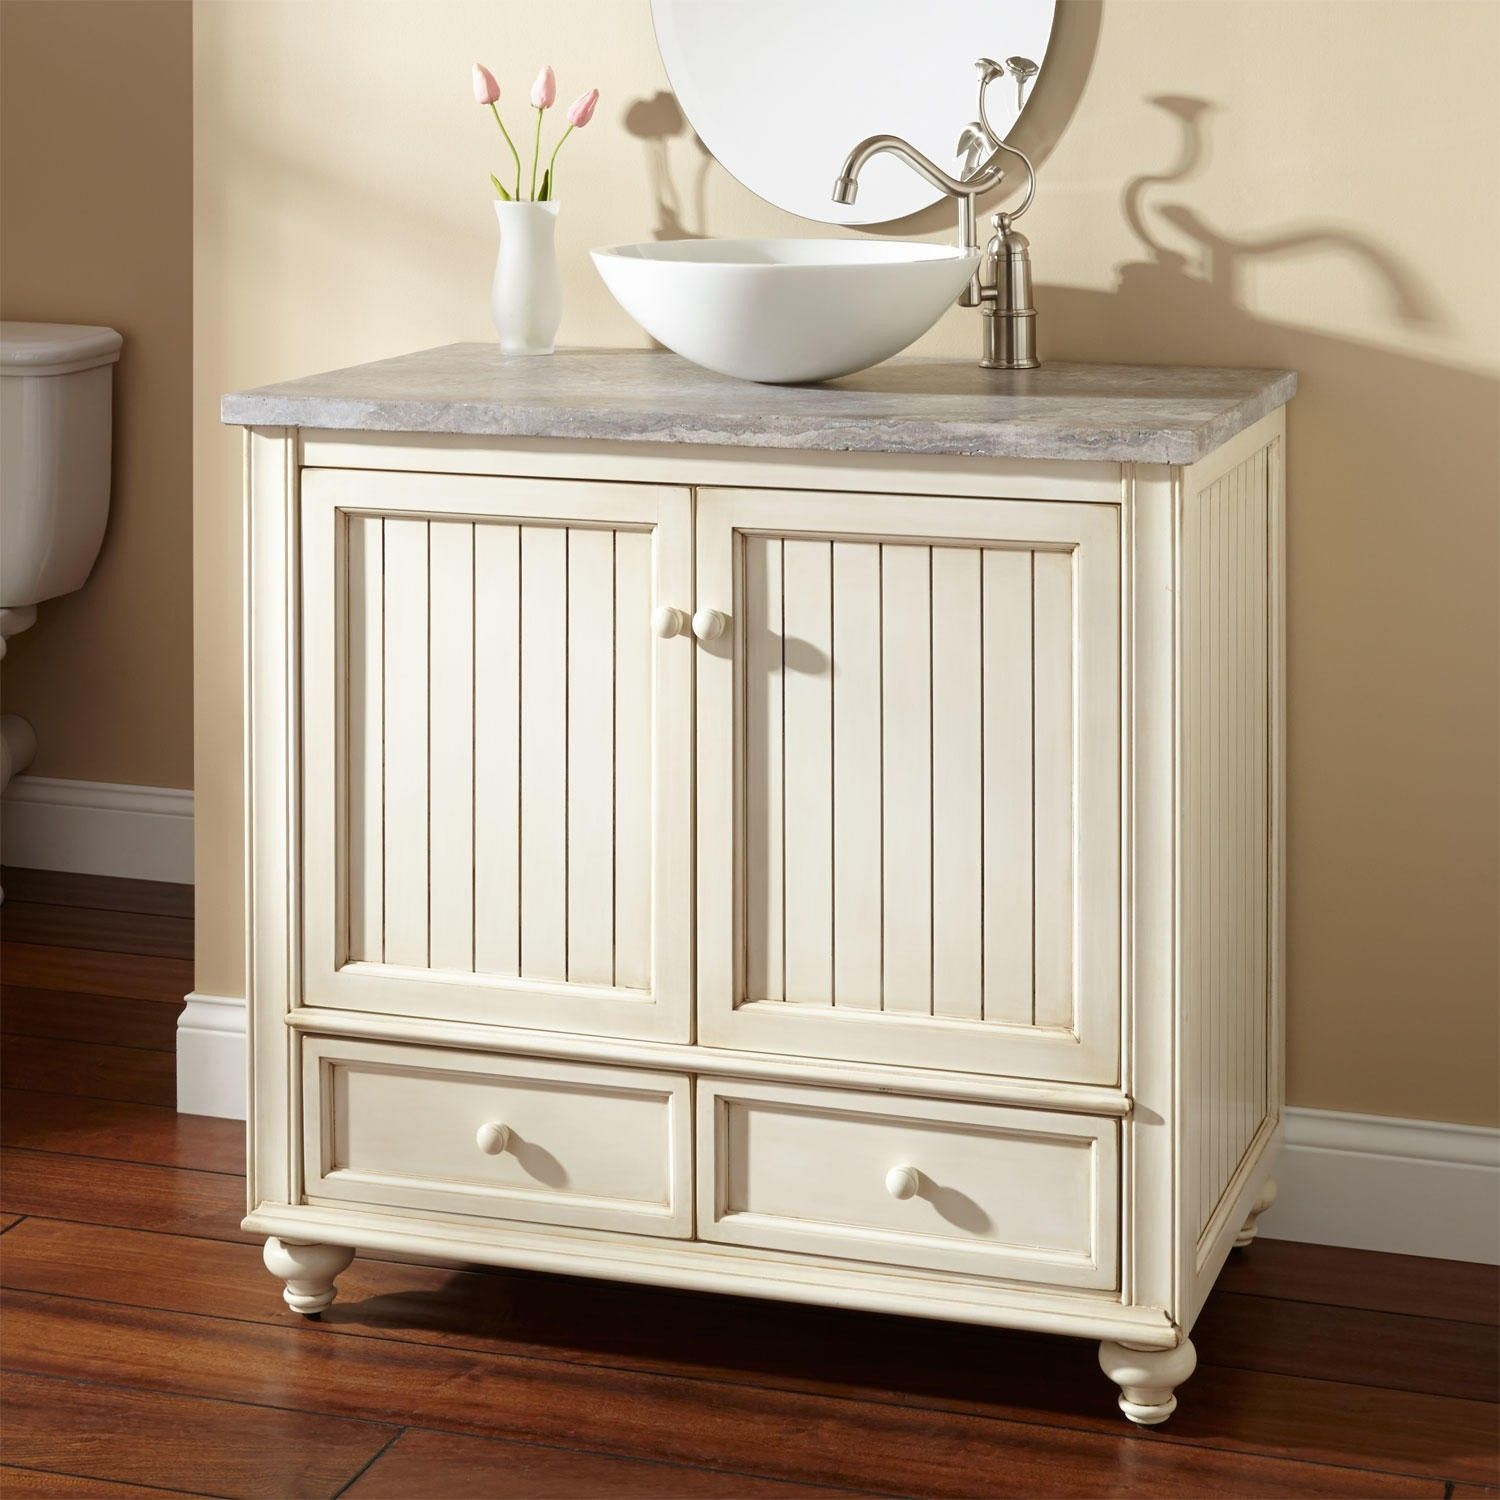 Vintage White Bathroom Vanity Decor Ideas Google Search